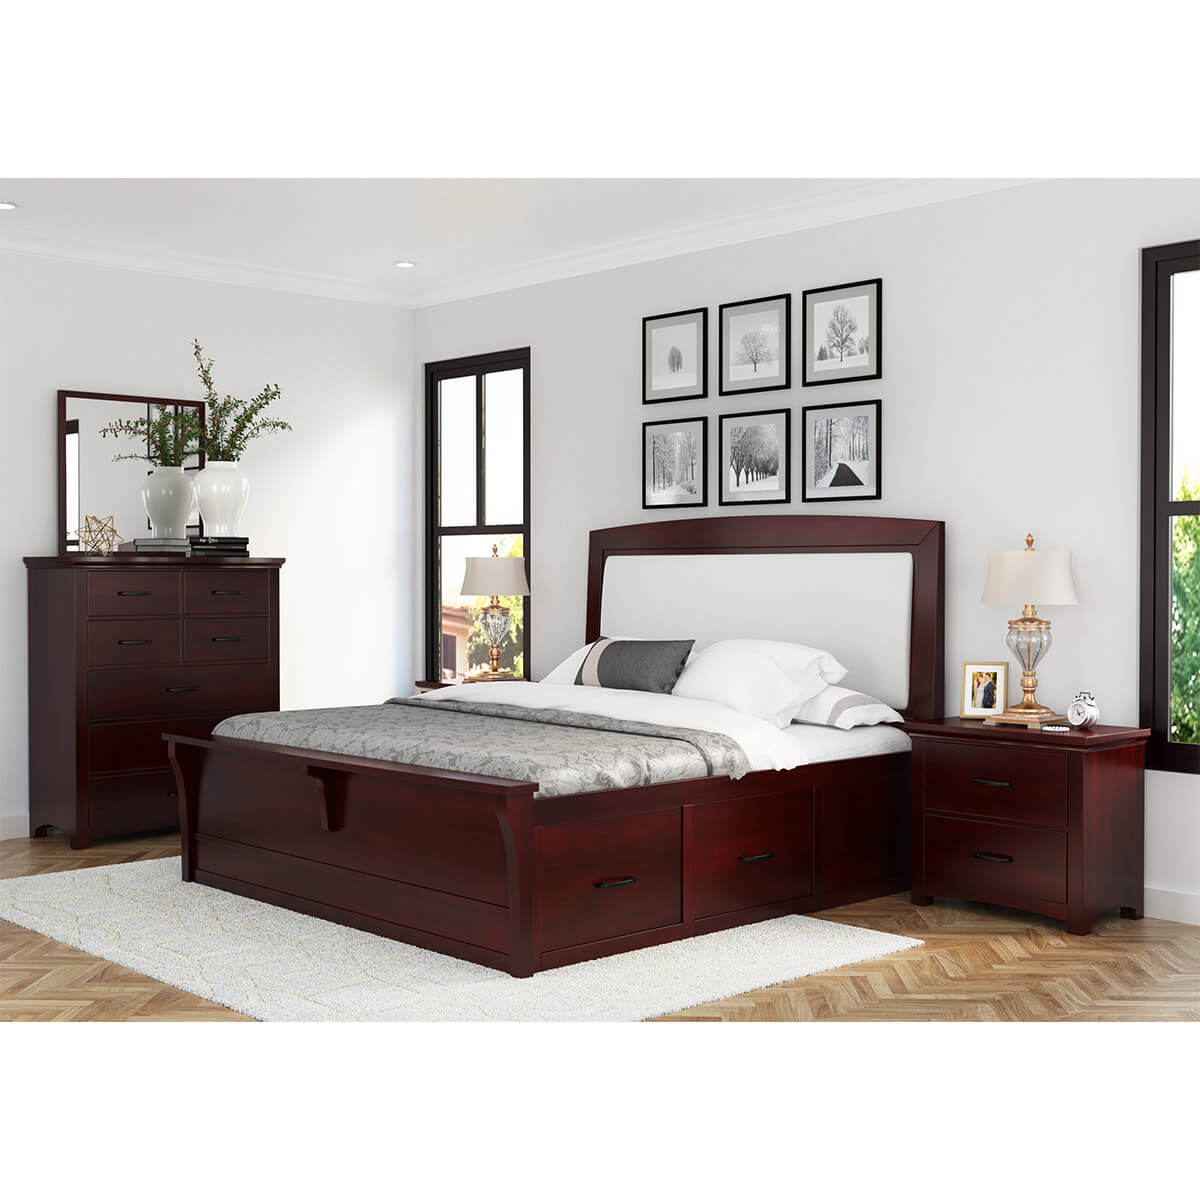 Vindemia Mahogany Wood 4 Piece Bedroom Set